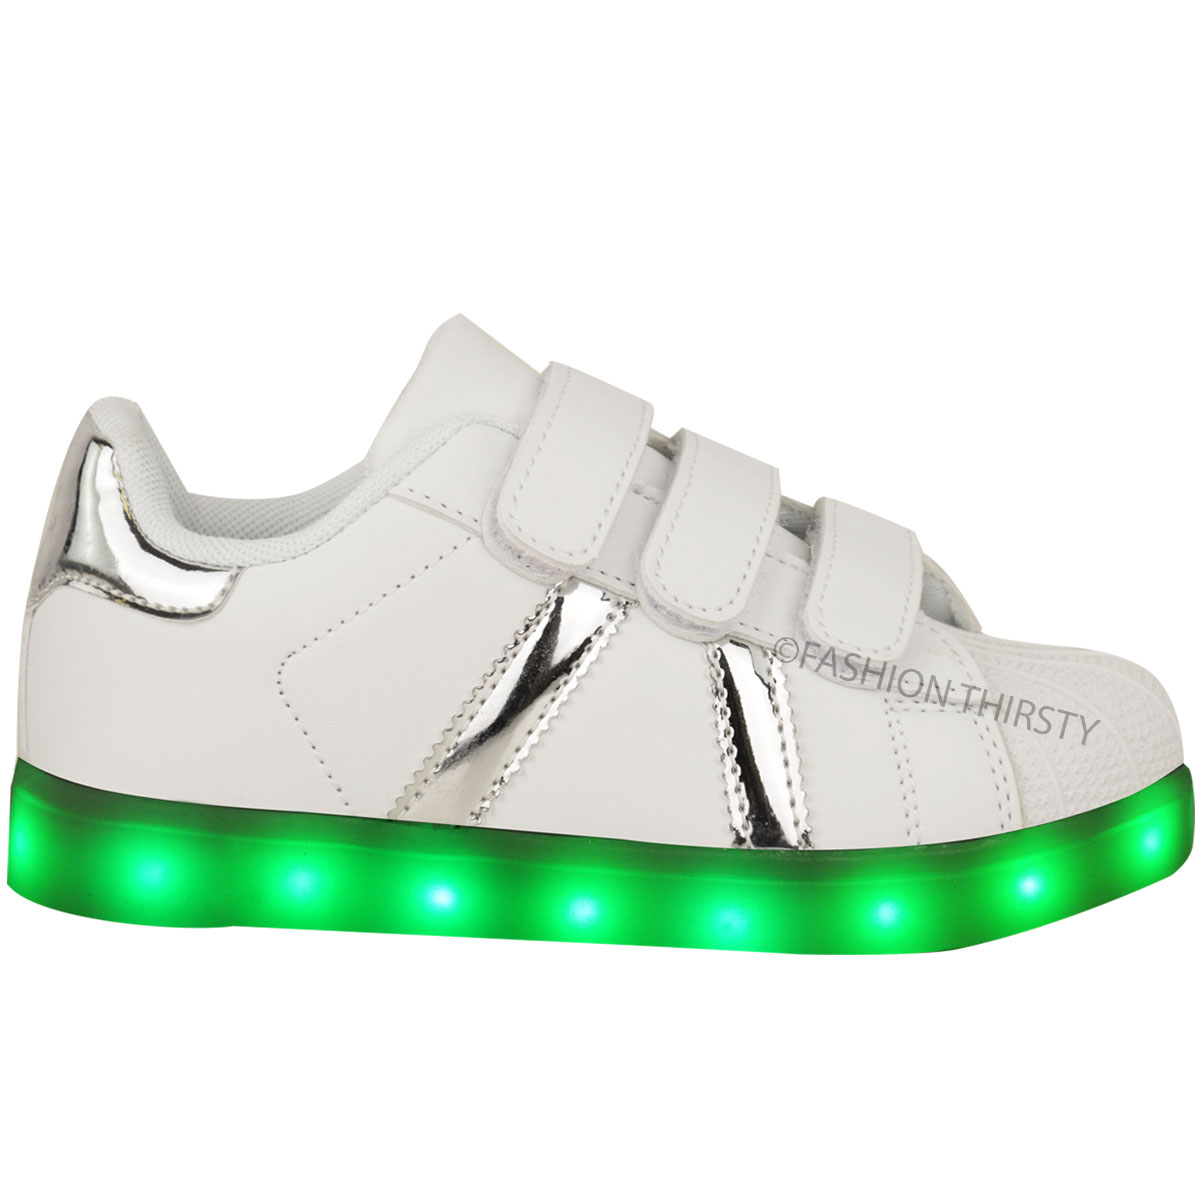 $ Buy LED Light Up Shoes For Sale For Woman, Men & Kids,Led Sneakers Are The Best Led Flashing Shoes To Party&Dancing With 7 Led Colors.